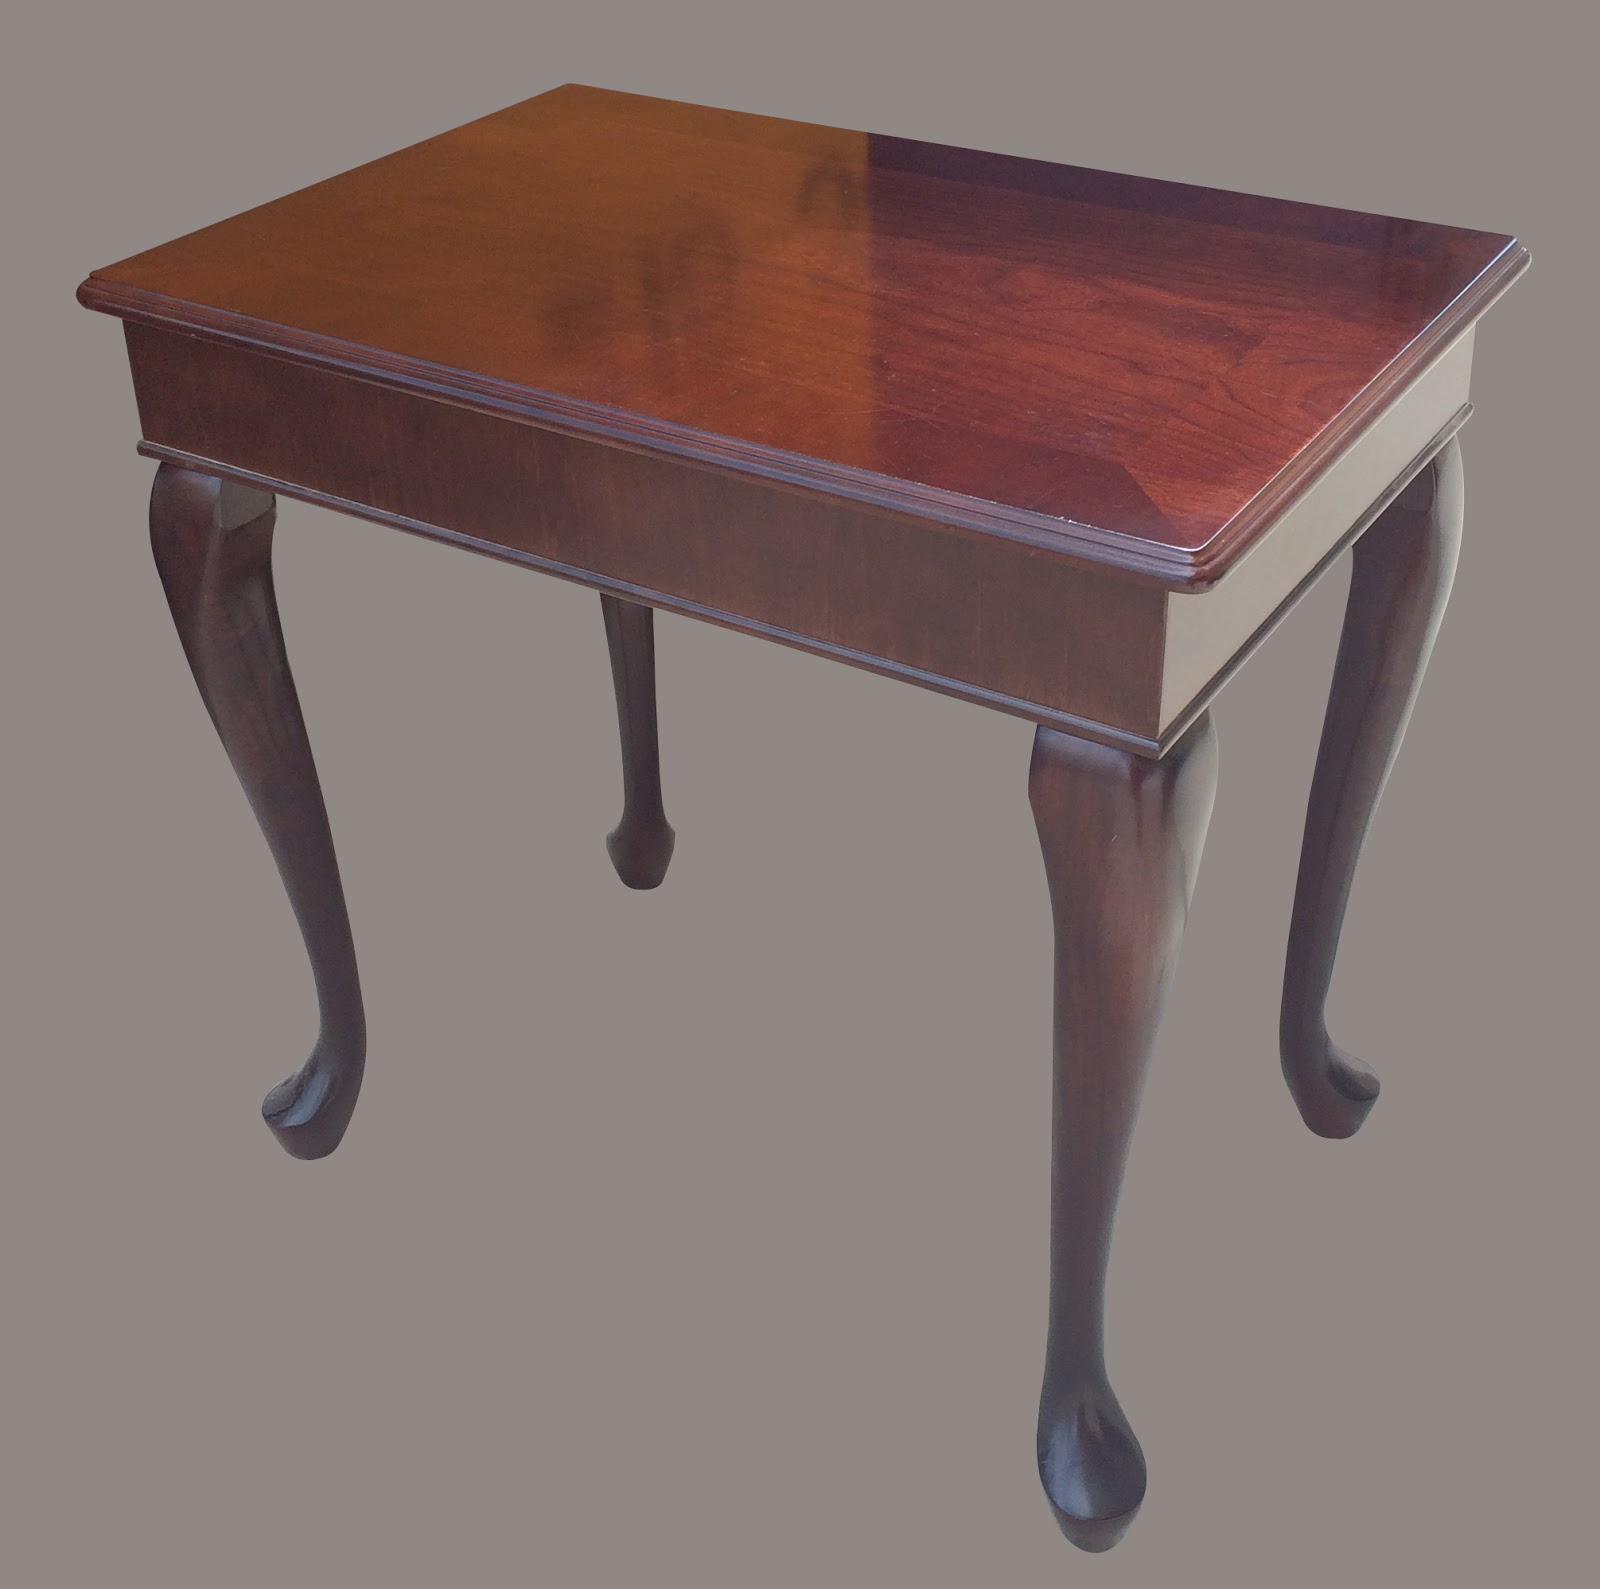 Strange Uhuru Furniture Collectibles Bombay Co Side Table 65 Sold Lamtechconsult Wood Chair Design Ideas Lamtechconsultcom